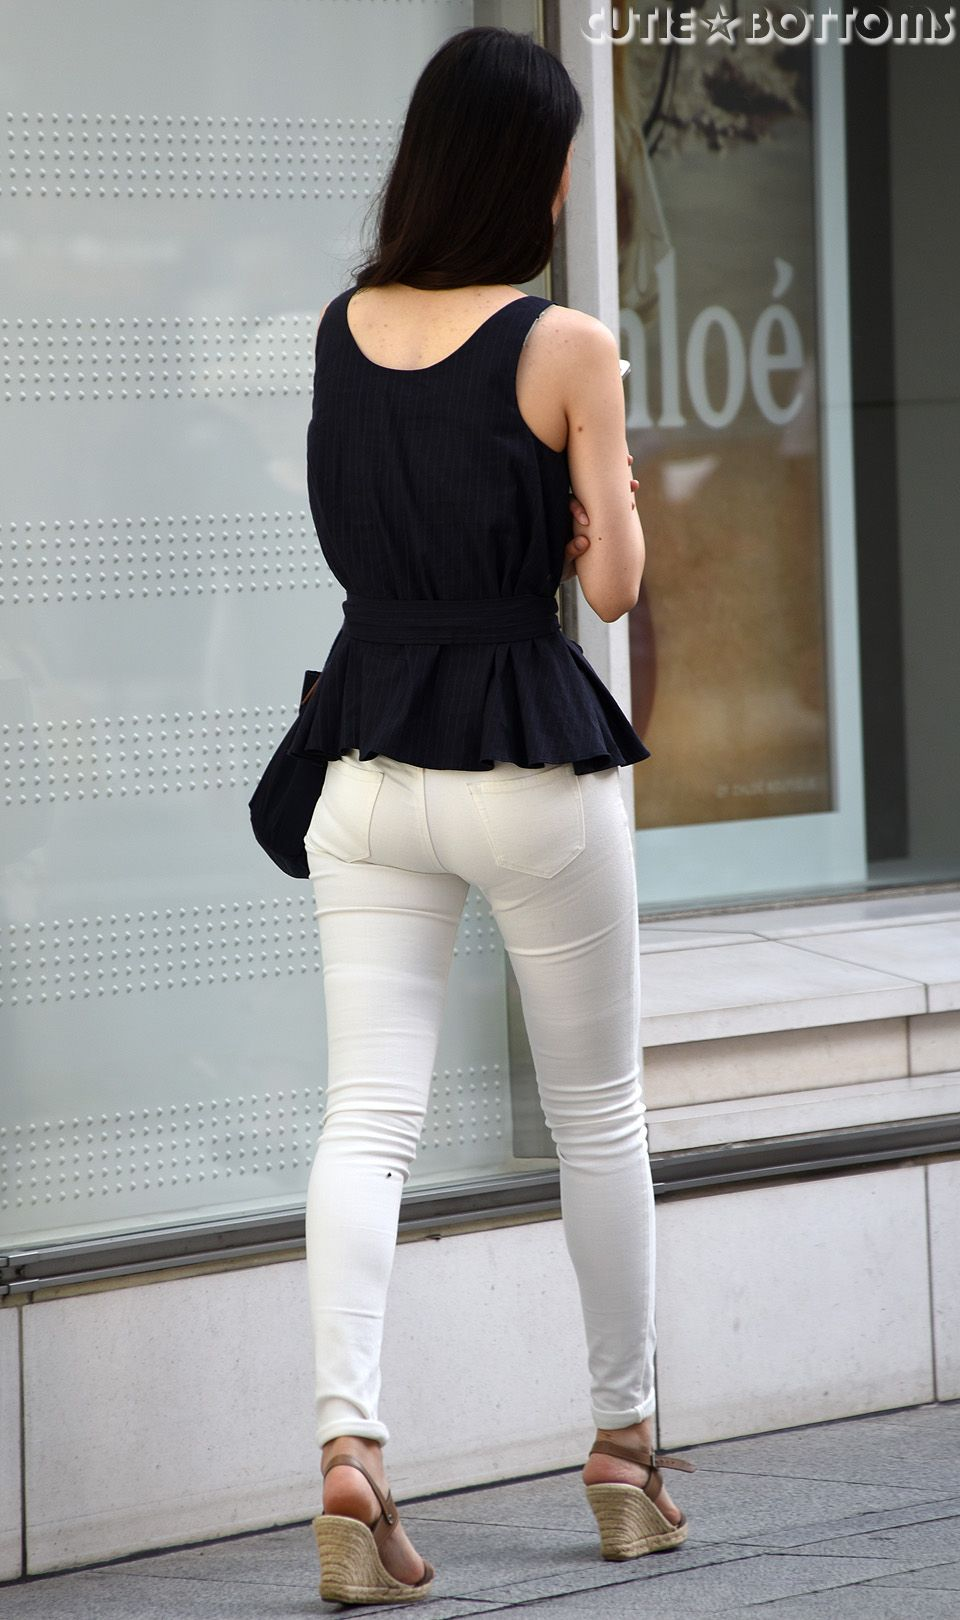 Hot girl in tight jeans